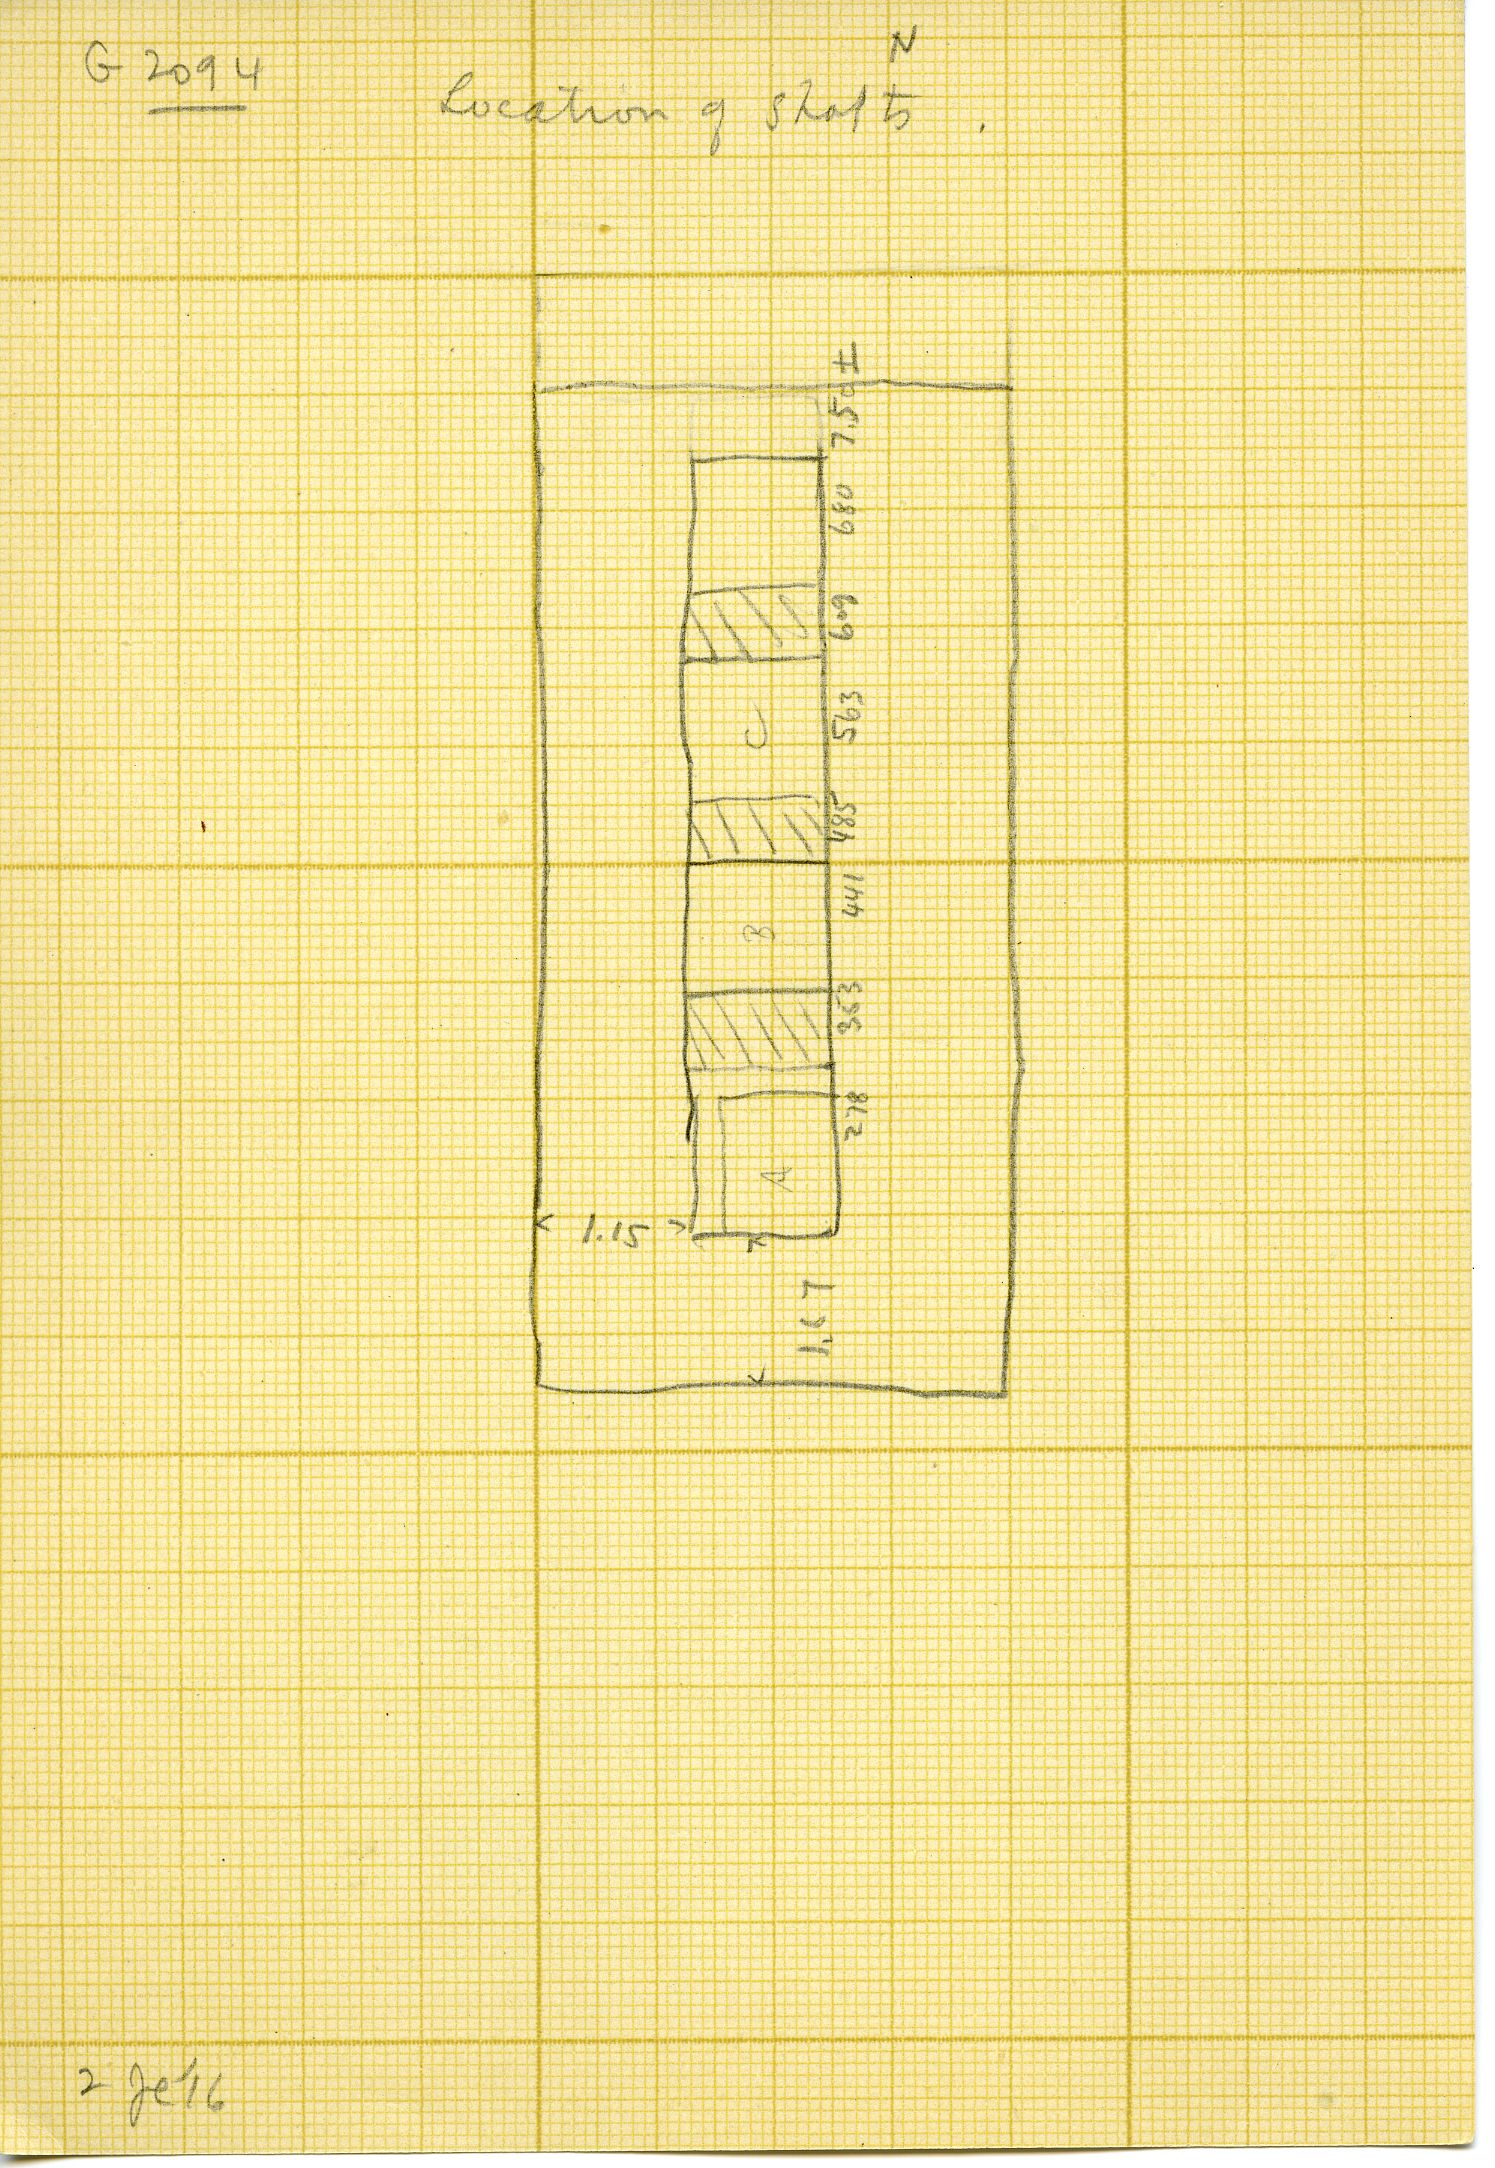 Maps and plans: G 3094, Plan